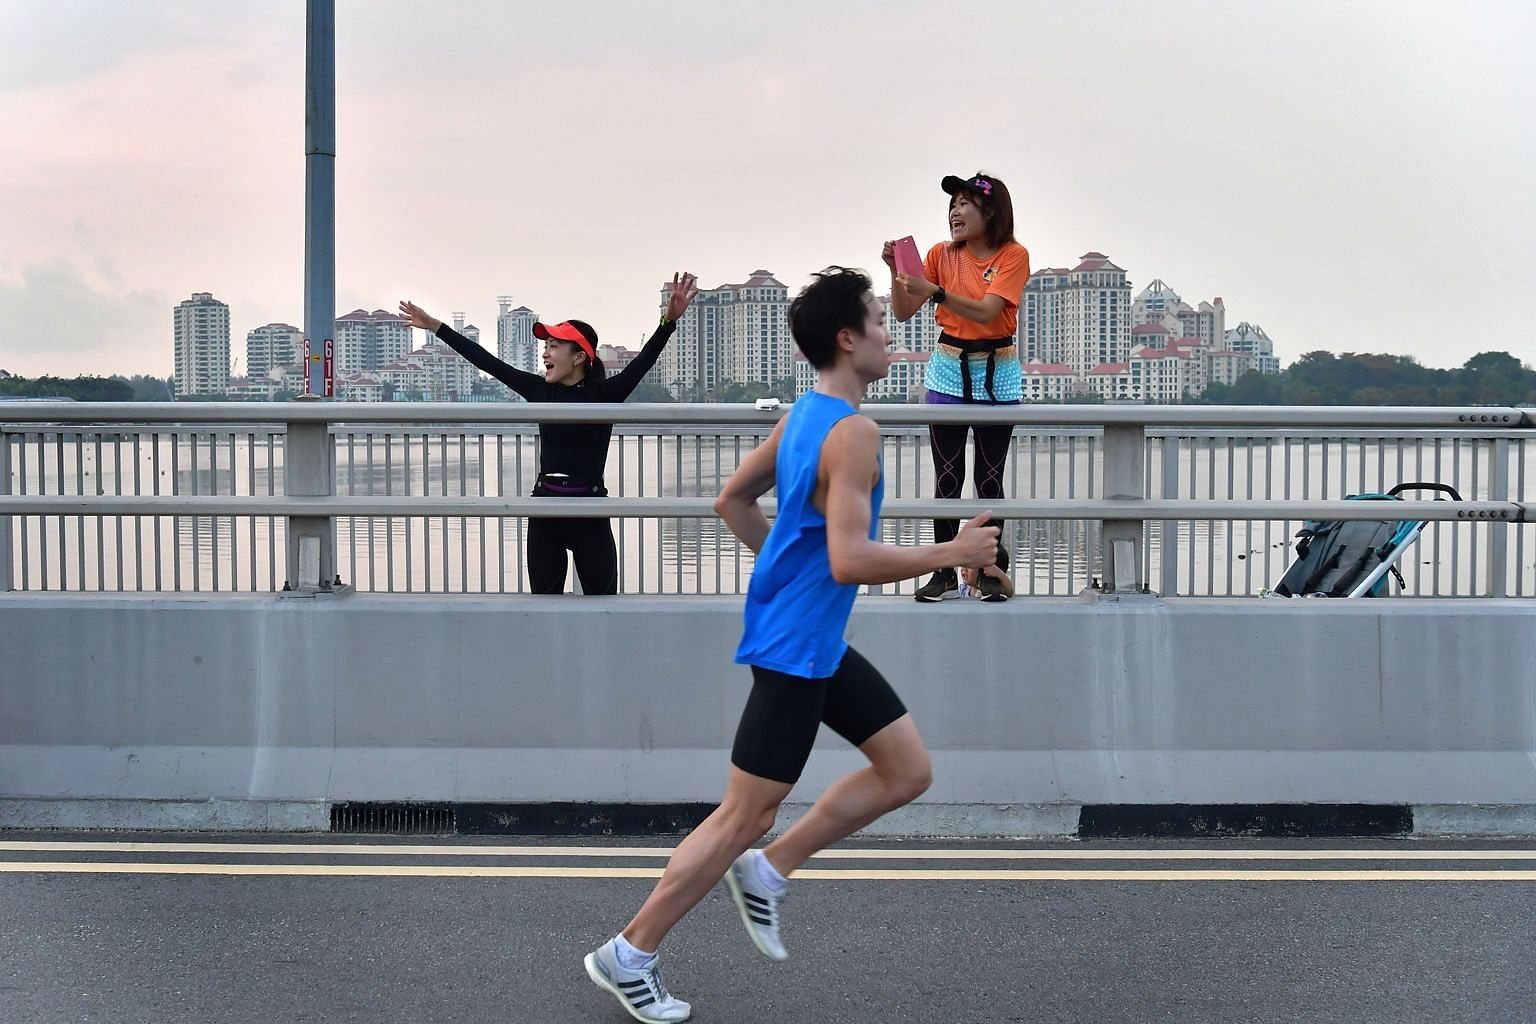 Supporters cheering ST Run participants on the Merdeka Bridge last September. To mark this newspaper's 175th anniversary, there will be two categories at The Straits Times Virtual Run - 17.5km and 175km.